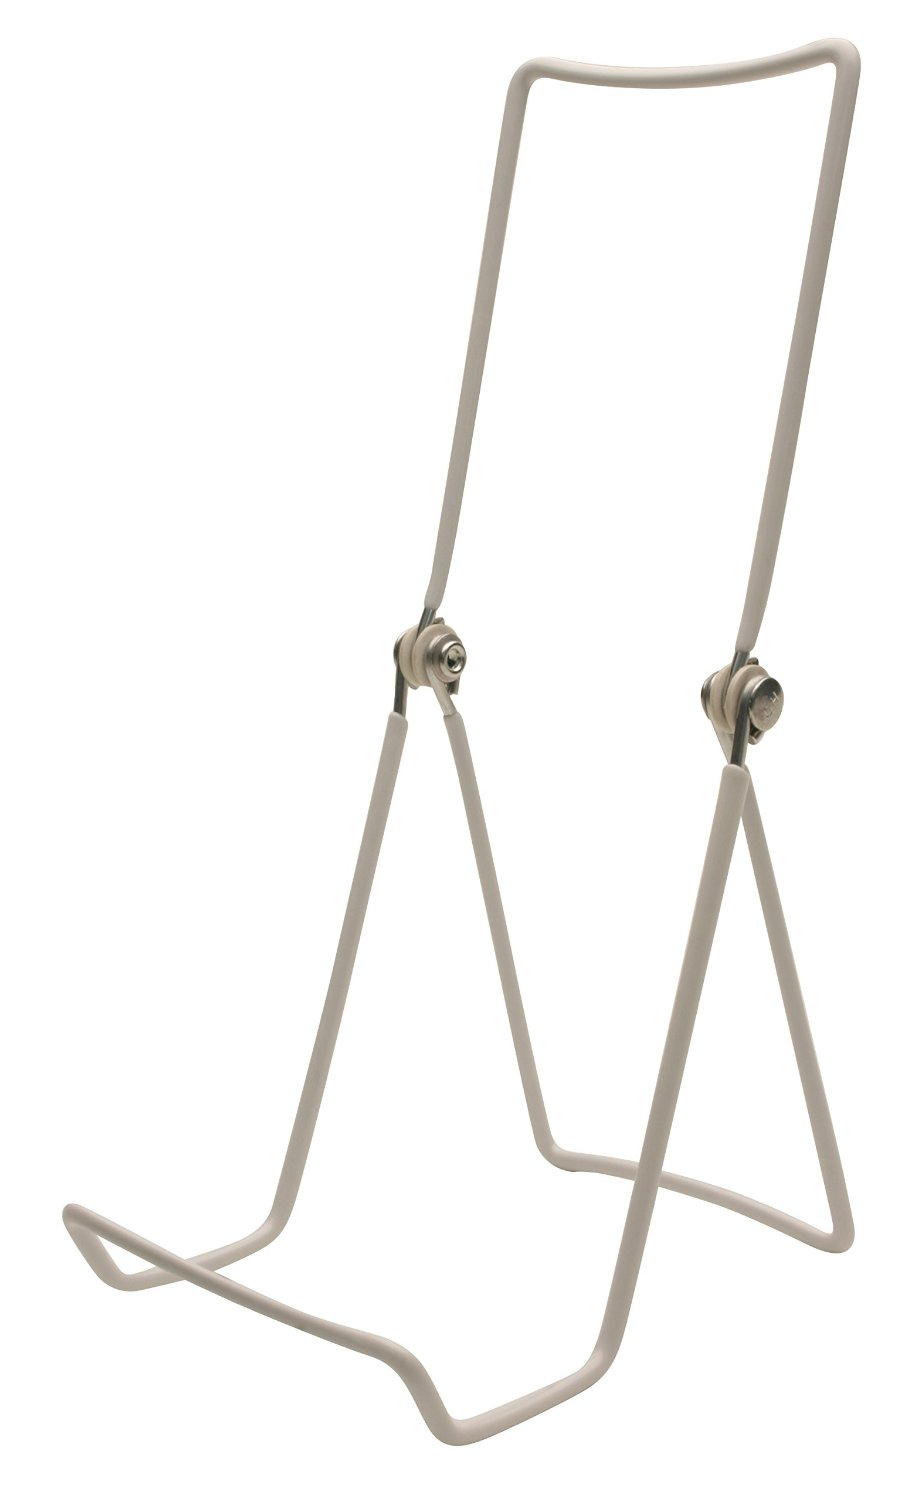 """6 Gibson Holders 6AC Adjustable Wire Display Easels- 3.75"""" W x 8"""" H with 2.25"""" display ledge, White"""